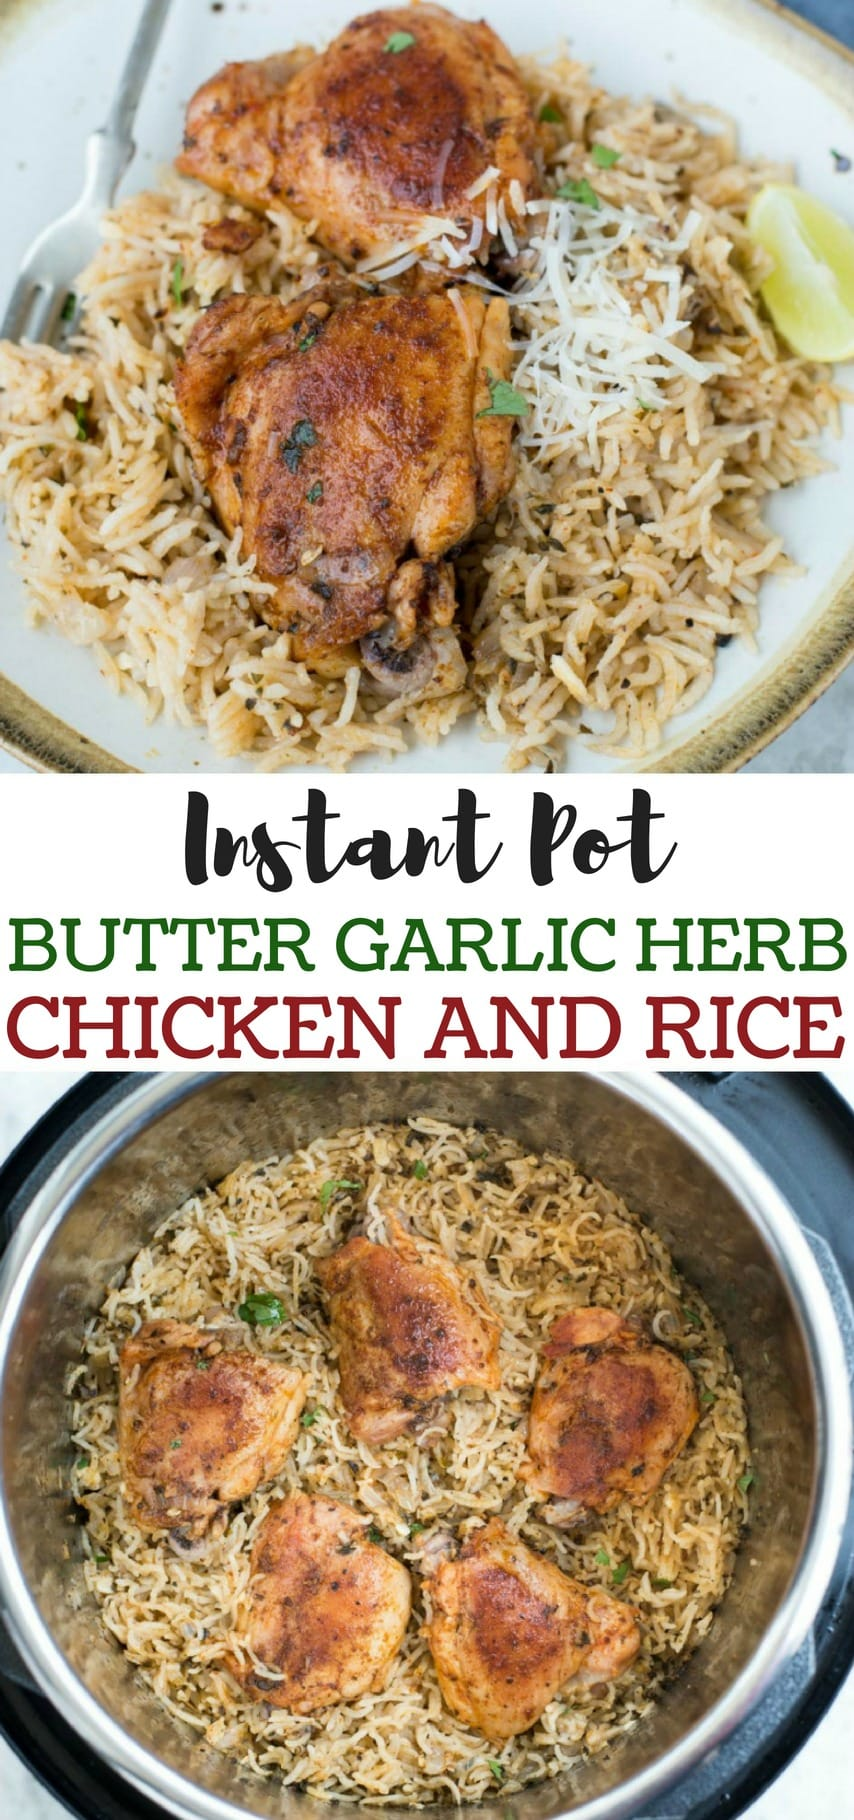 Garlic Herb Chicken and Rice made in the InstantPot have fluffy buttery rice and Juicy Chicken thighs. This Instant Pot Garlic Herb Chicken and Rice is a wholesome dinner that entire family will love.